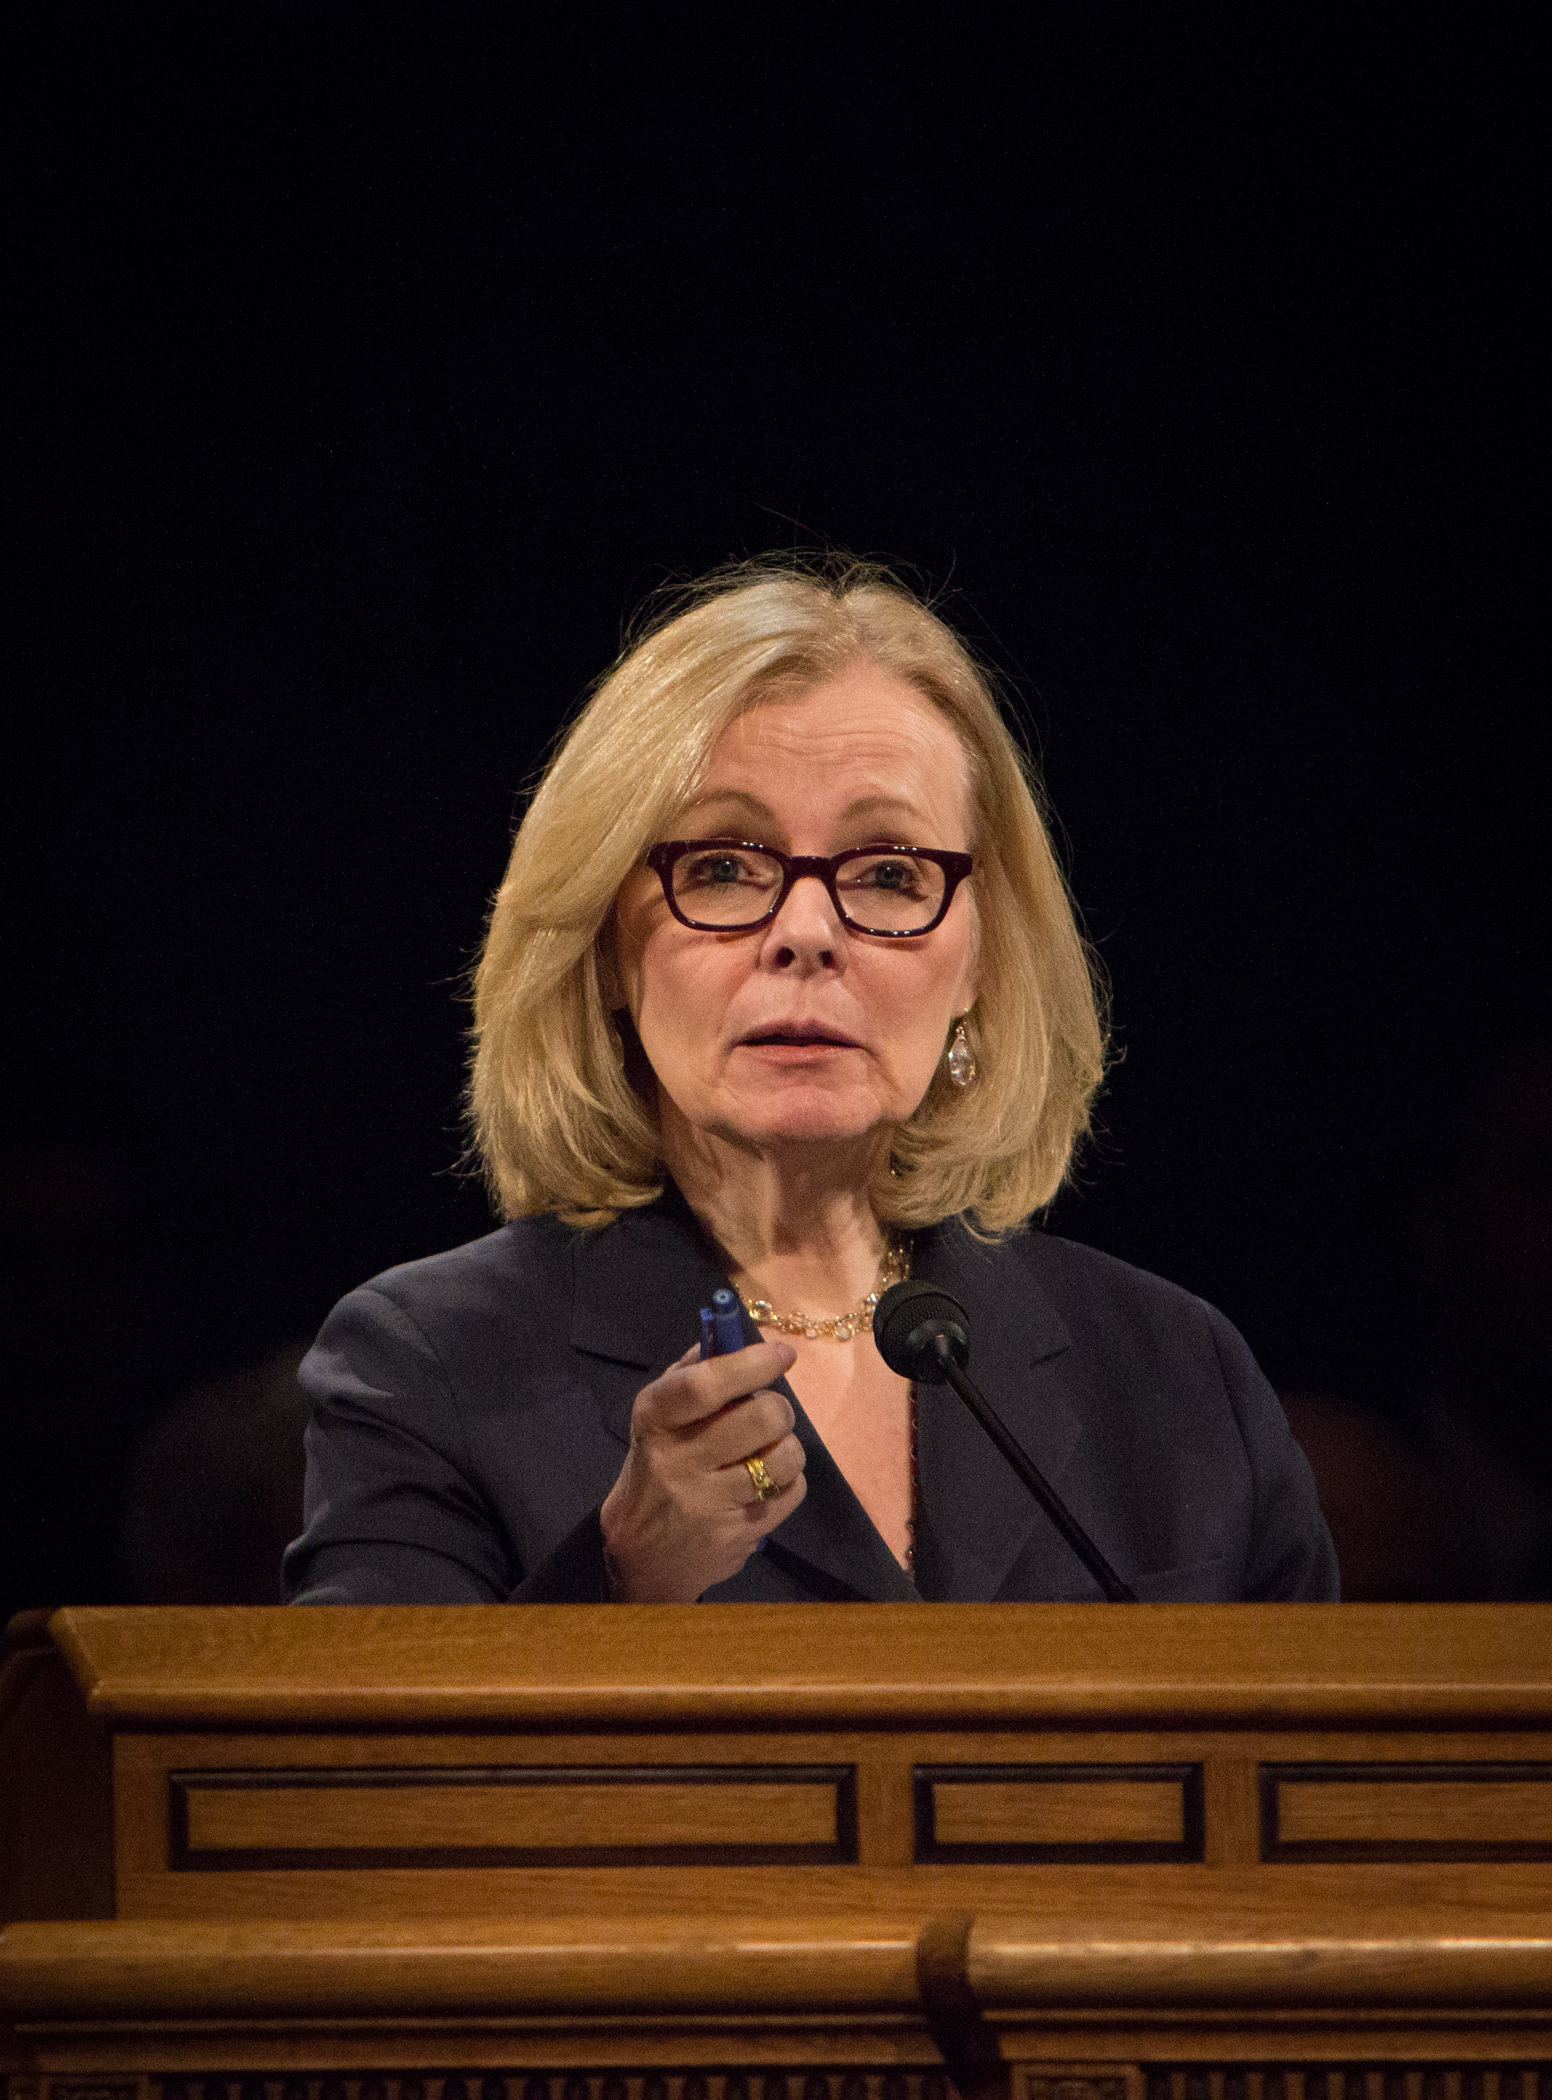 Peggy Noonan addressed BYU students and faculty about leadership through the eyes of the past five presidents of the United States. Photo by Samantha Williams